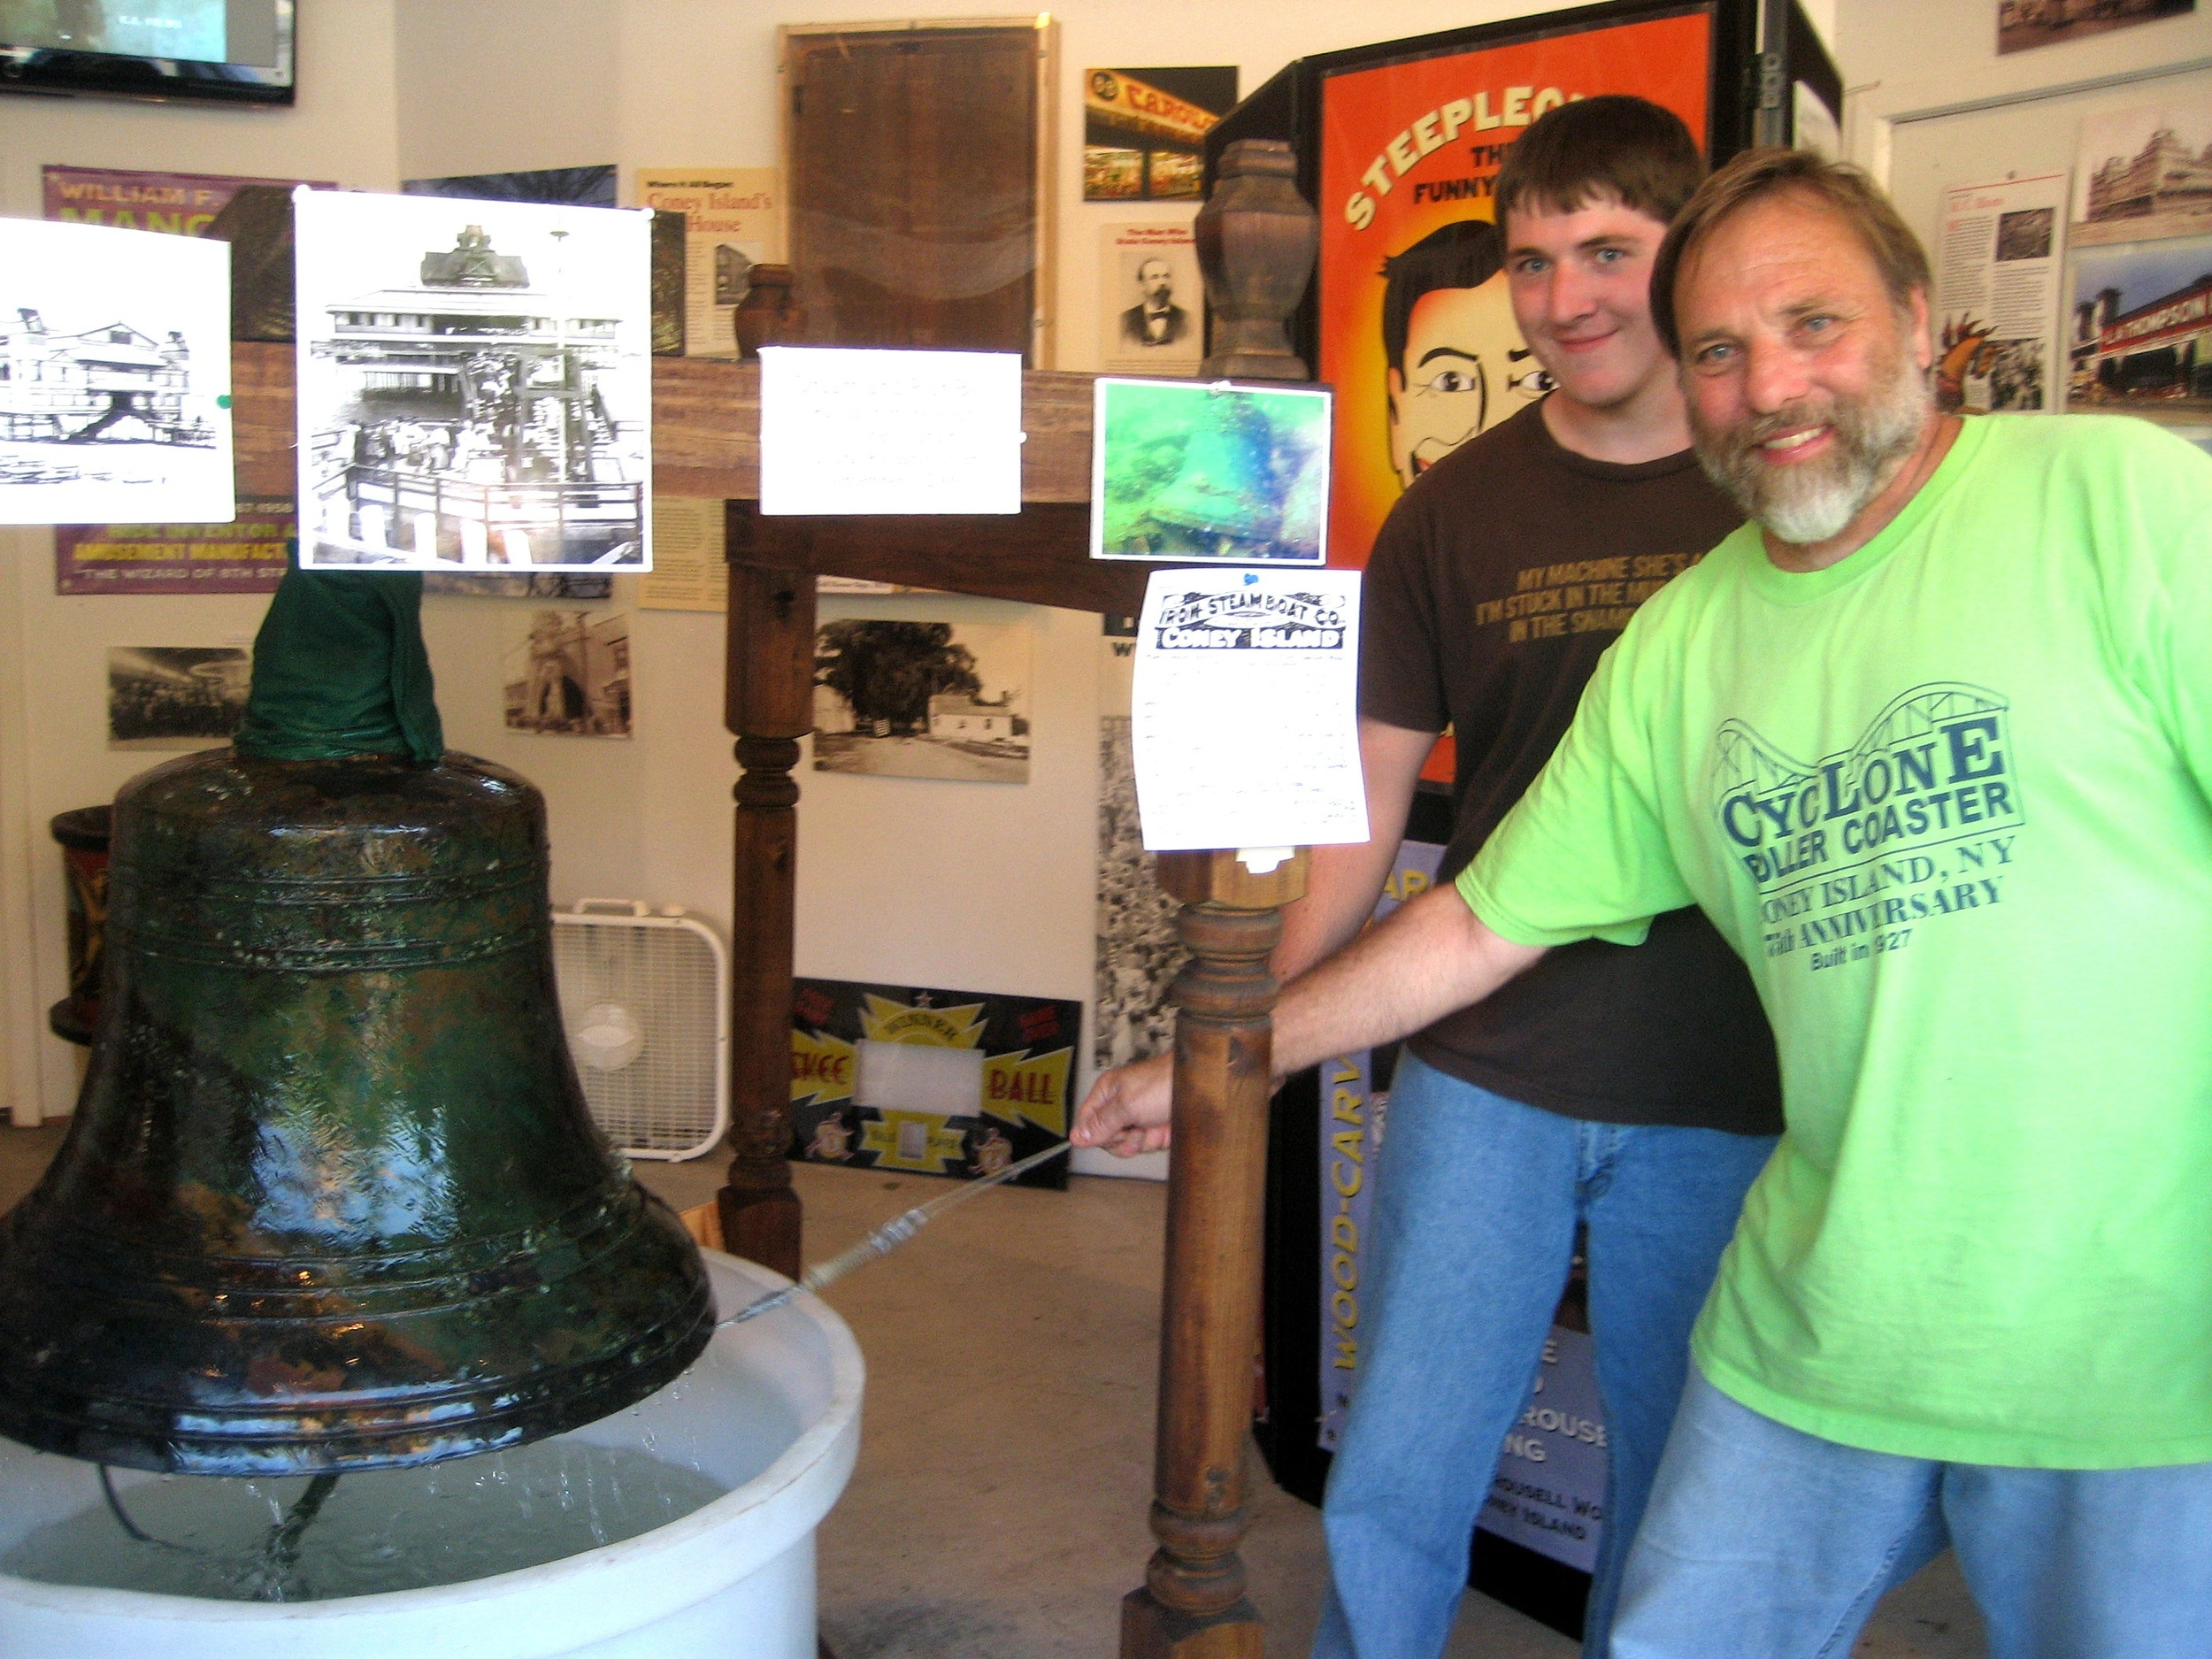 bill-galvin-and-son-ring-the-dreamland-bell.jpg